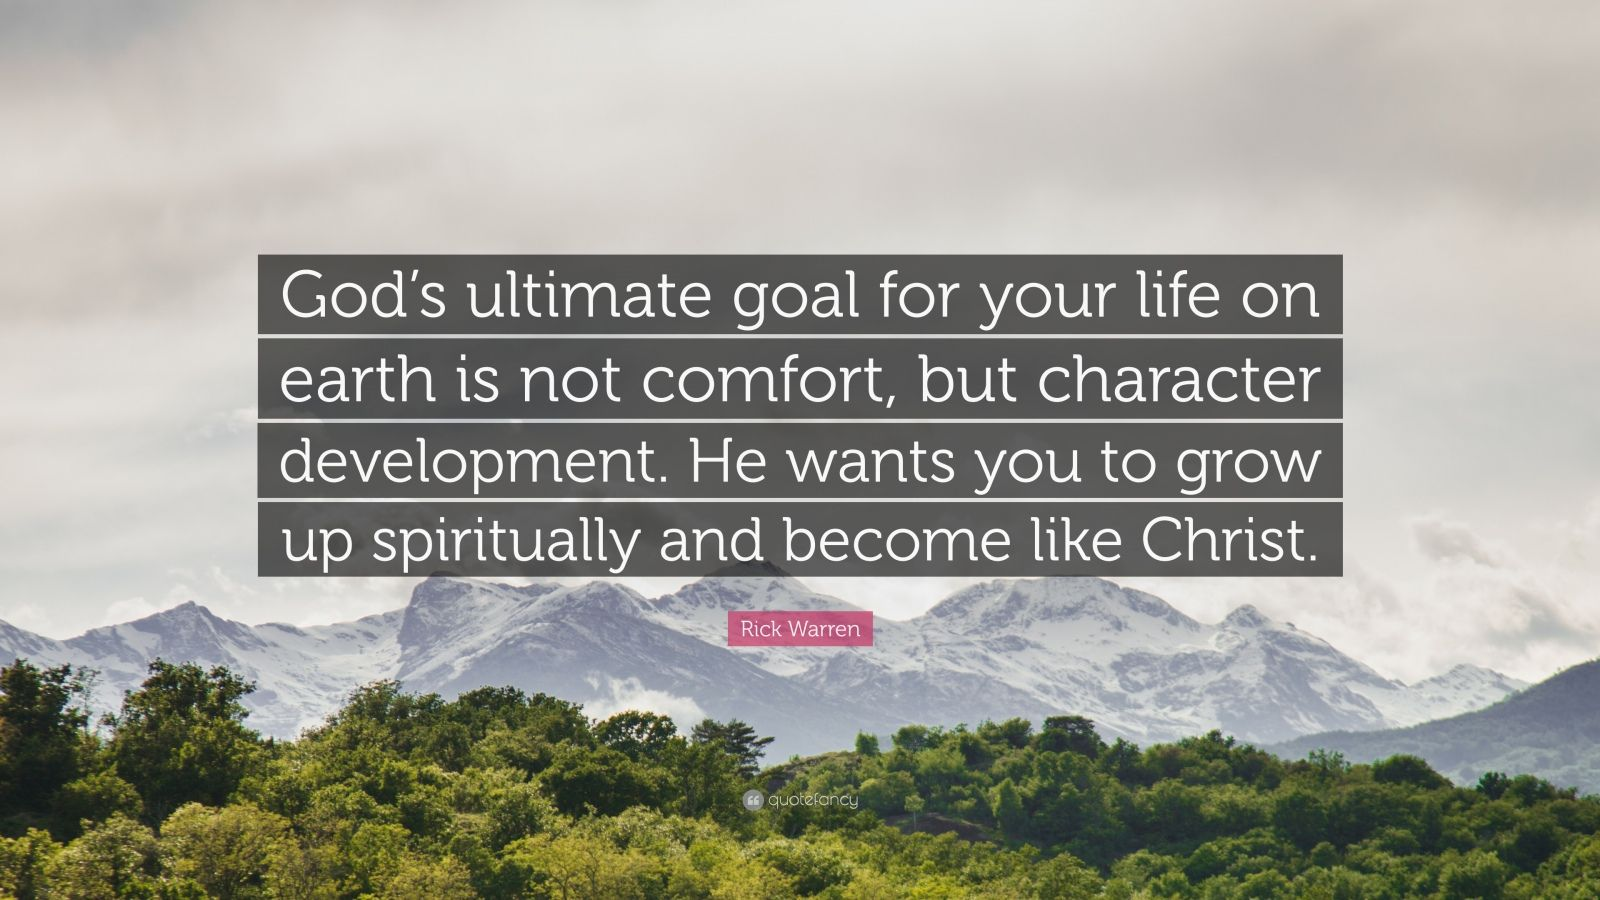 """Rick Warren Quote: """"God's ultimate goal for your life on earth is not comfort, but character development. He wants you to grow up spiritually and become like Christ."""""""